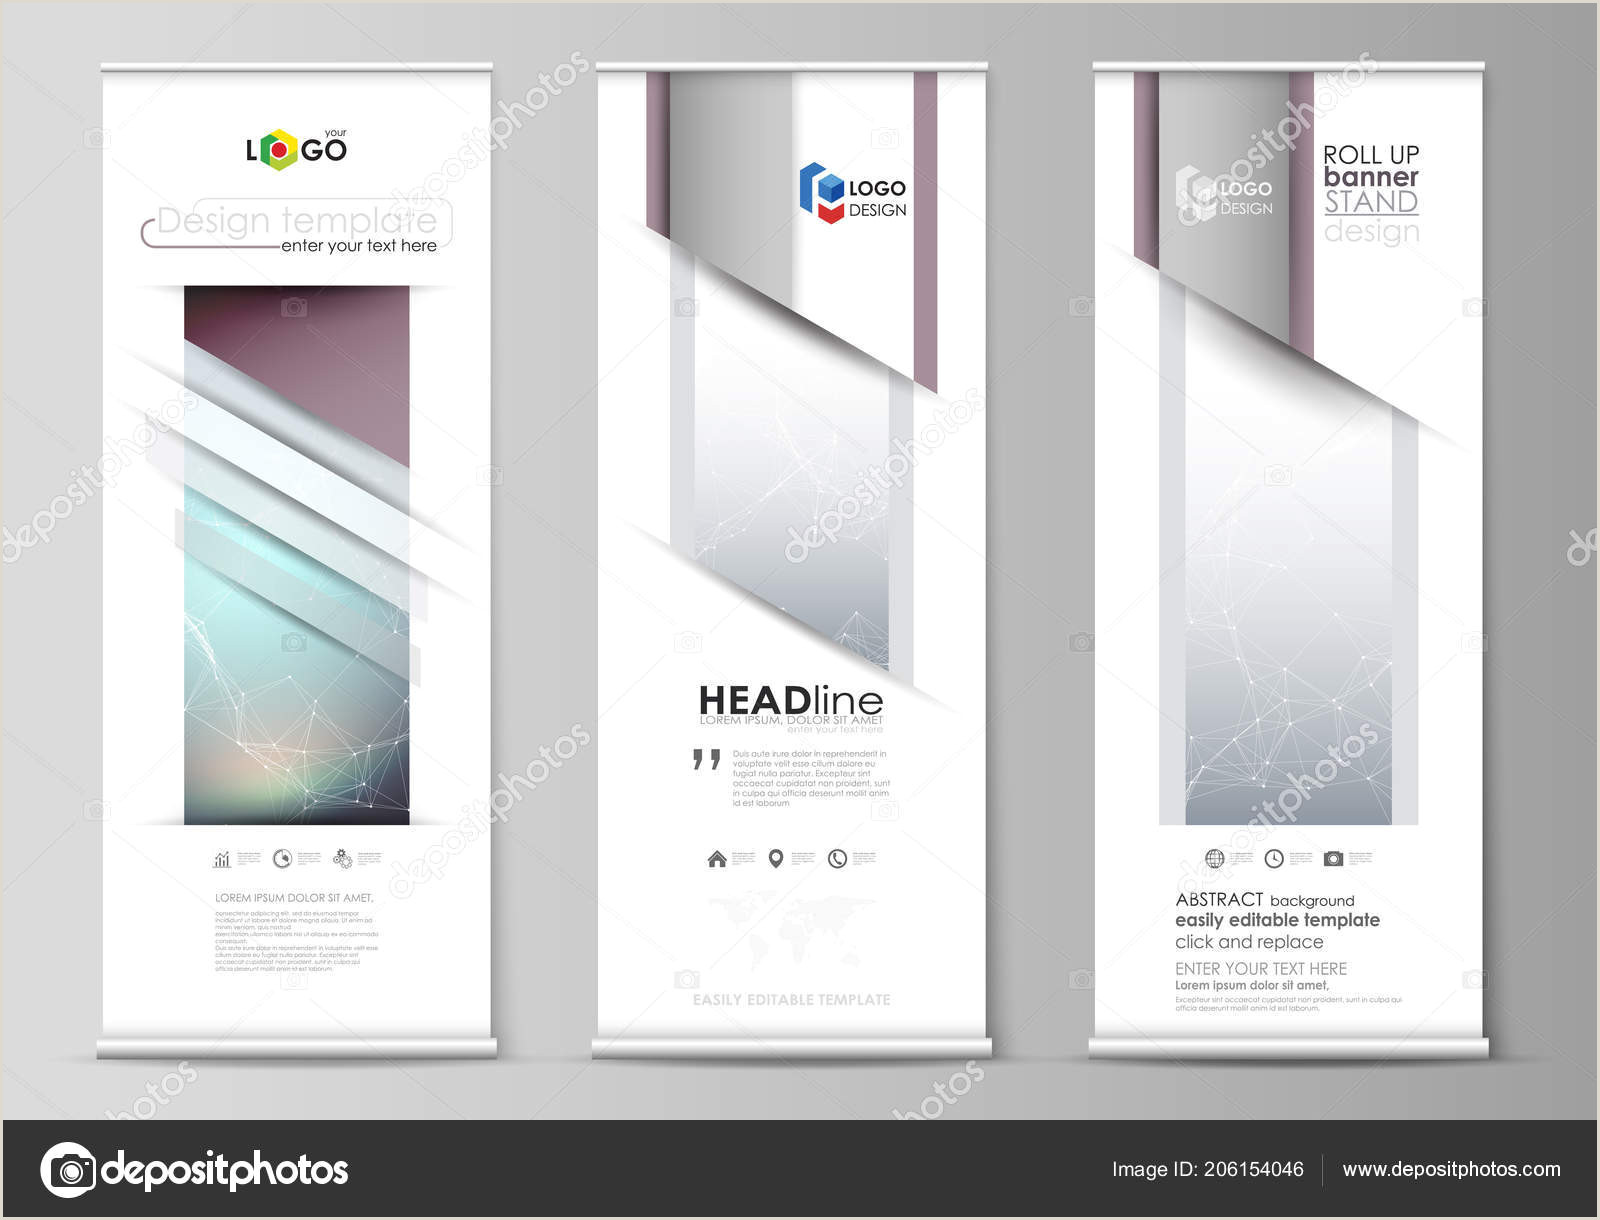 Retractable Banner Design Ideas Roll Up Banner Stands Abstract Geometric Design Templates Vertical Vector Flyers Flag Layouts Pounds Lines And Dots Big Data Visualization In